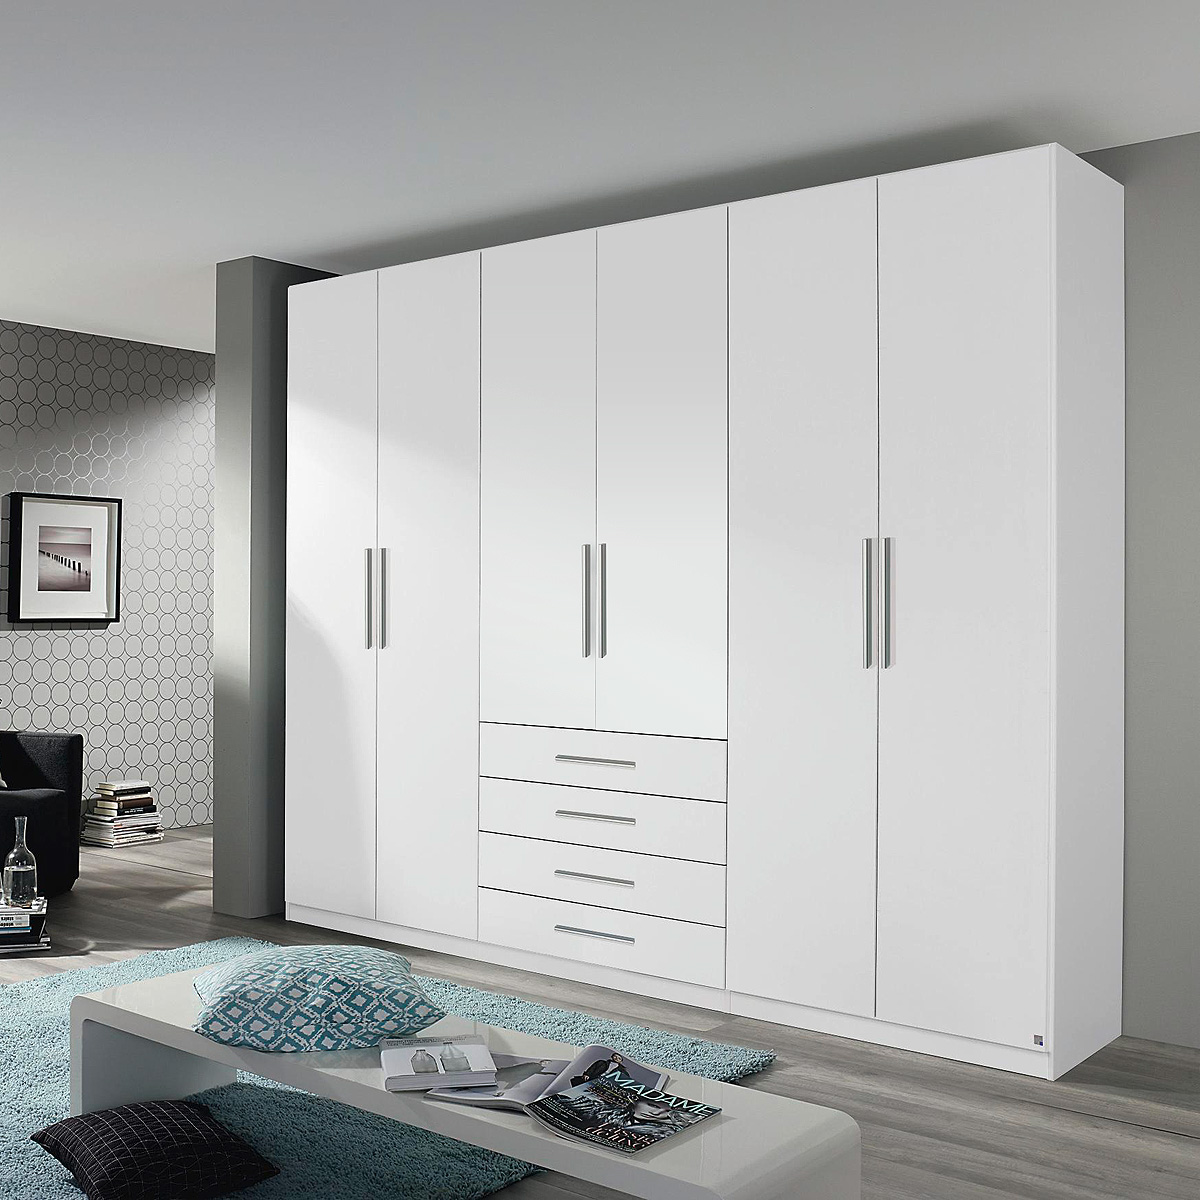 kleiderschrank kempten schrank schlafzimmer in wei und. Black Bedroom Furniture Sets. Home Design Ideas